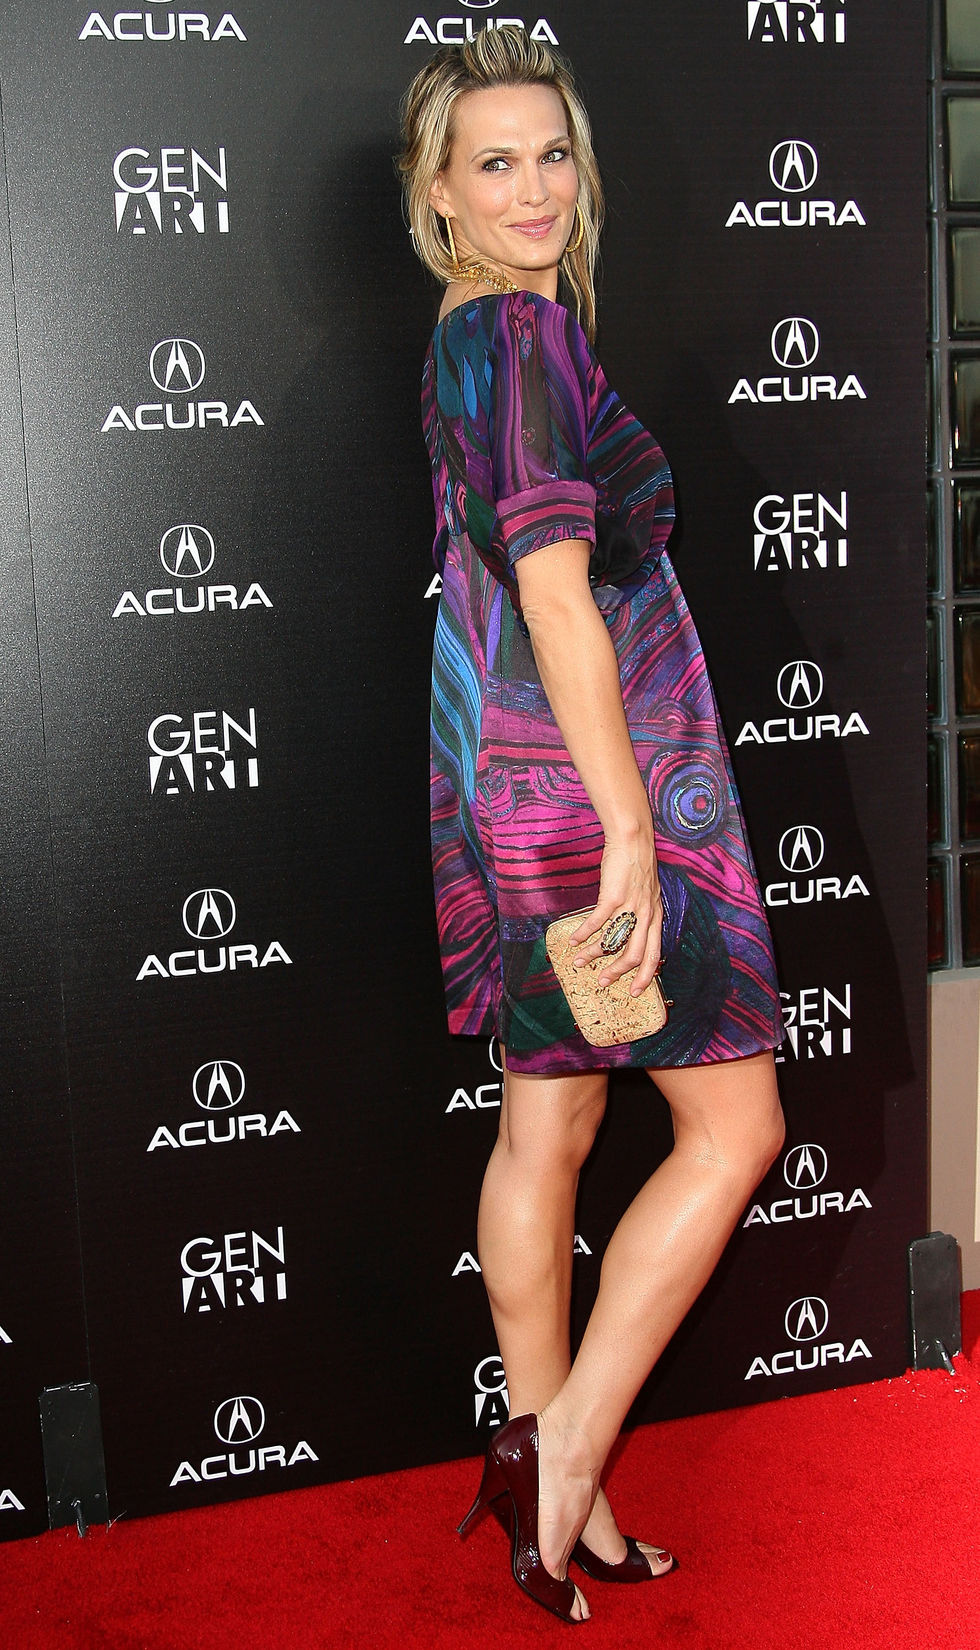 molly-sims-capture-the-night-photography-exhibition-in-los-angeles-08